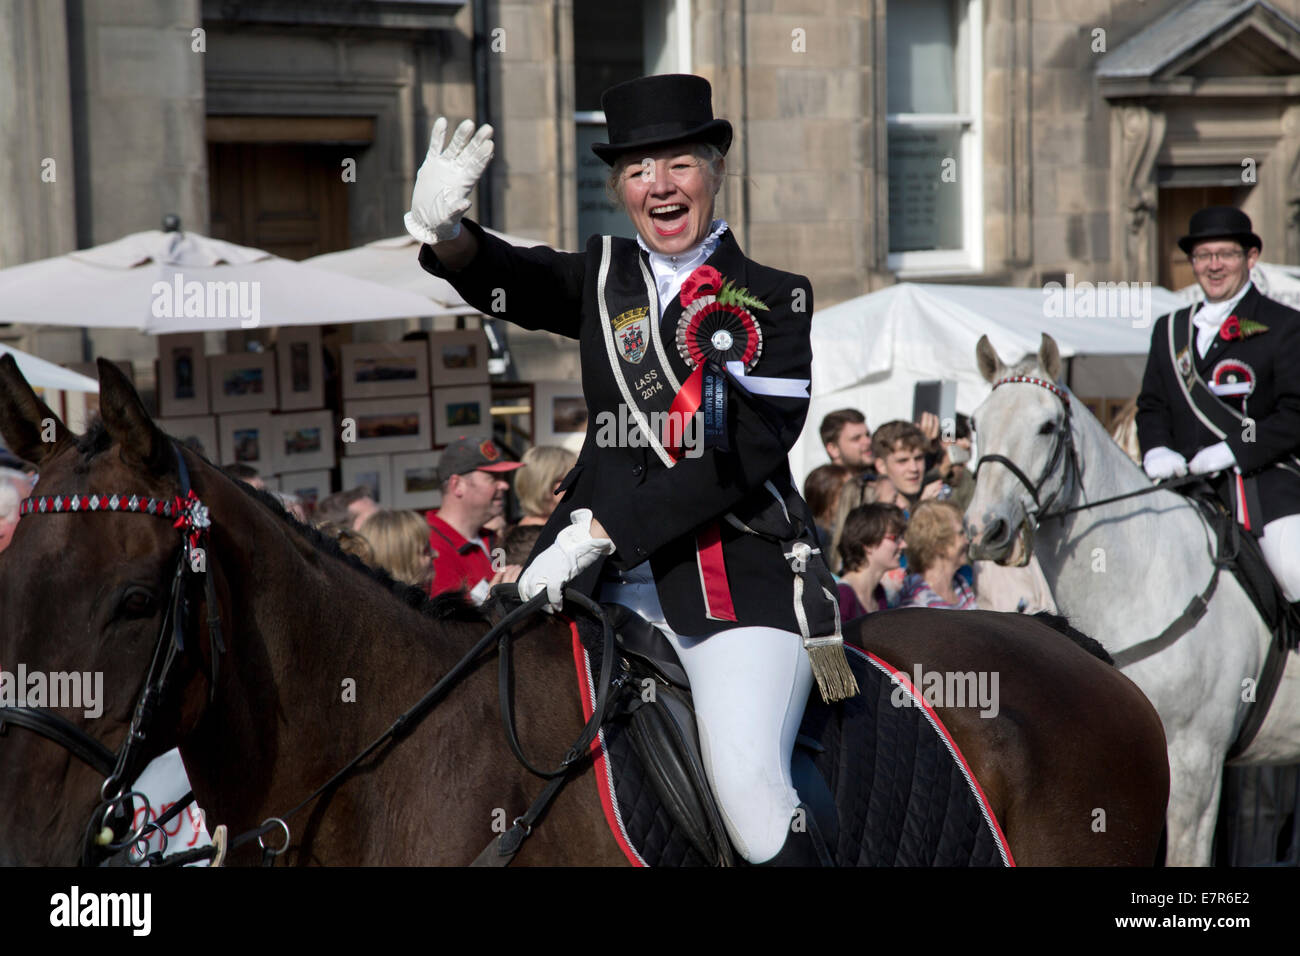 A woman on a horse waving to people in the crowd on the Royal Mile, Edinburgh before the annual Riding of the Marches - Stock Image